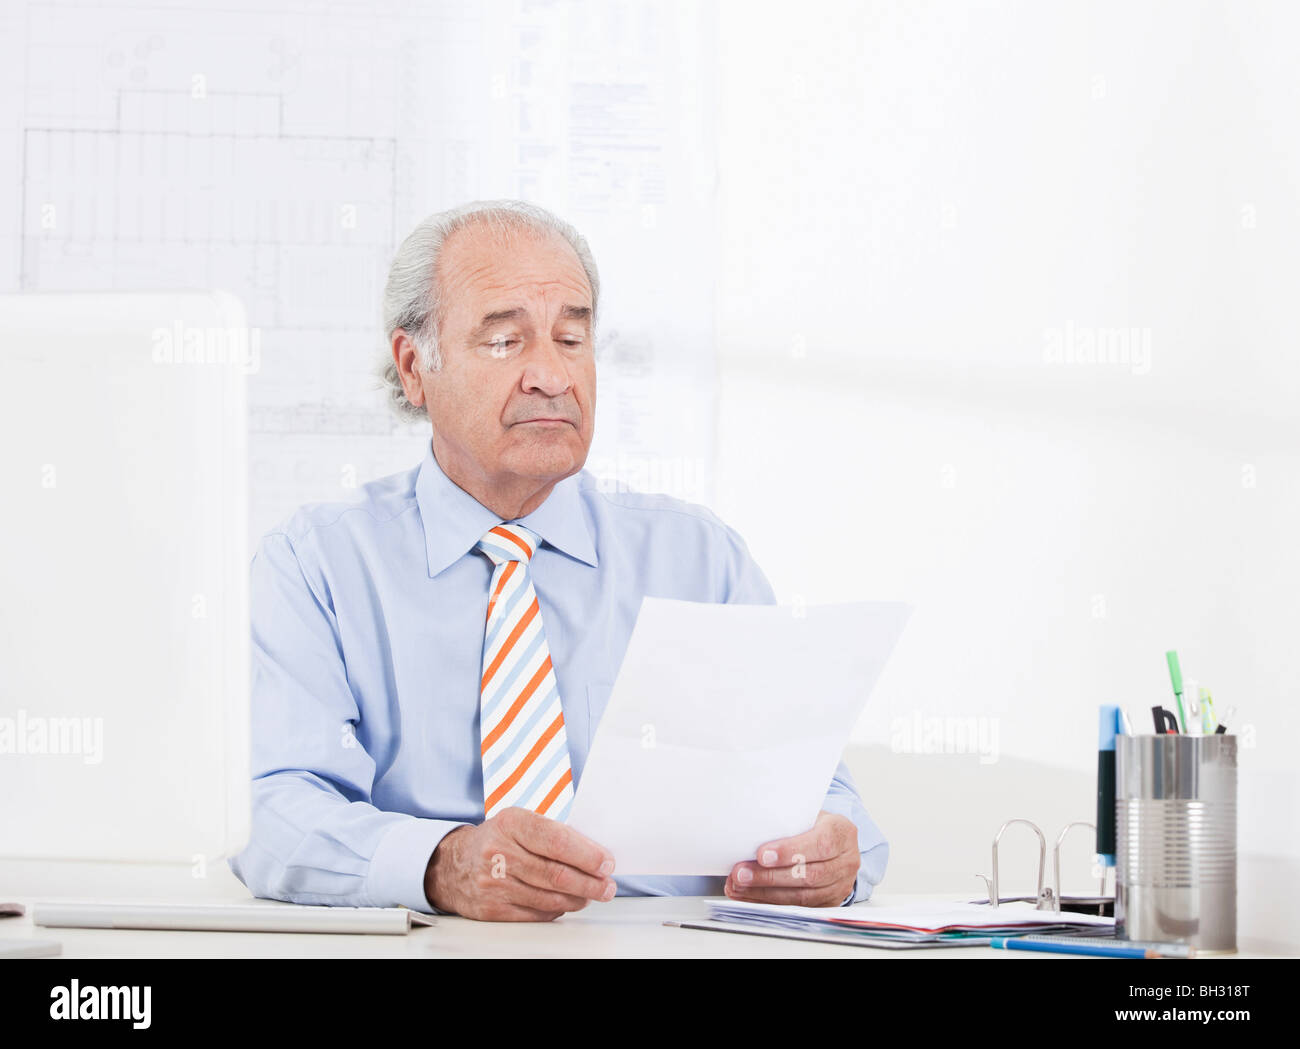 Man reading a paper in the office - Stock Image